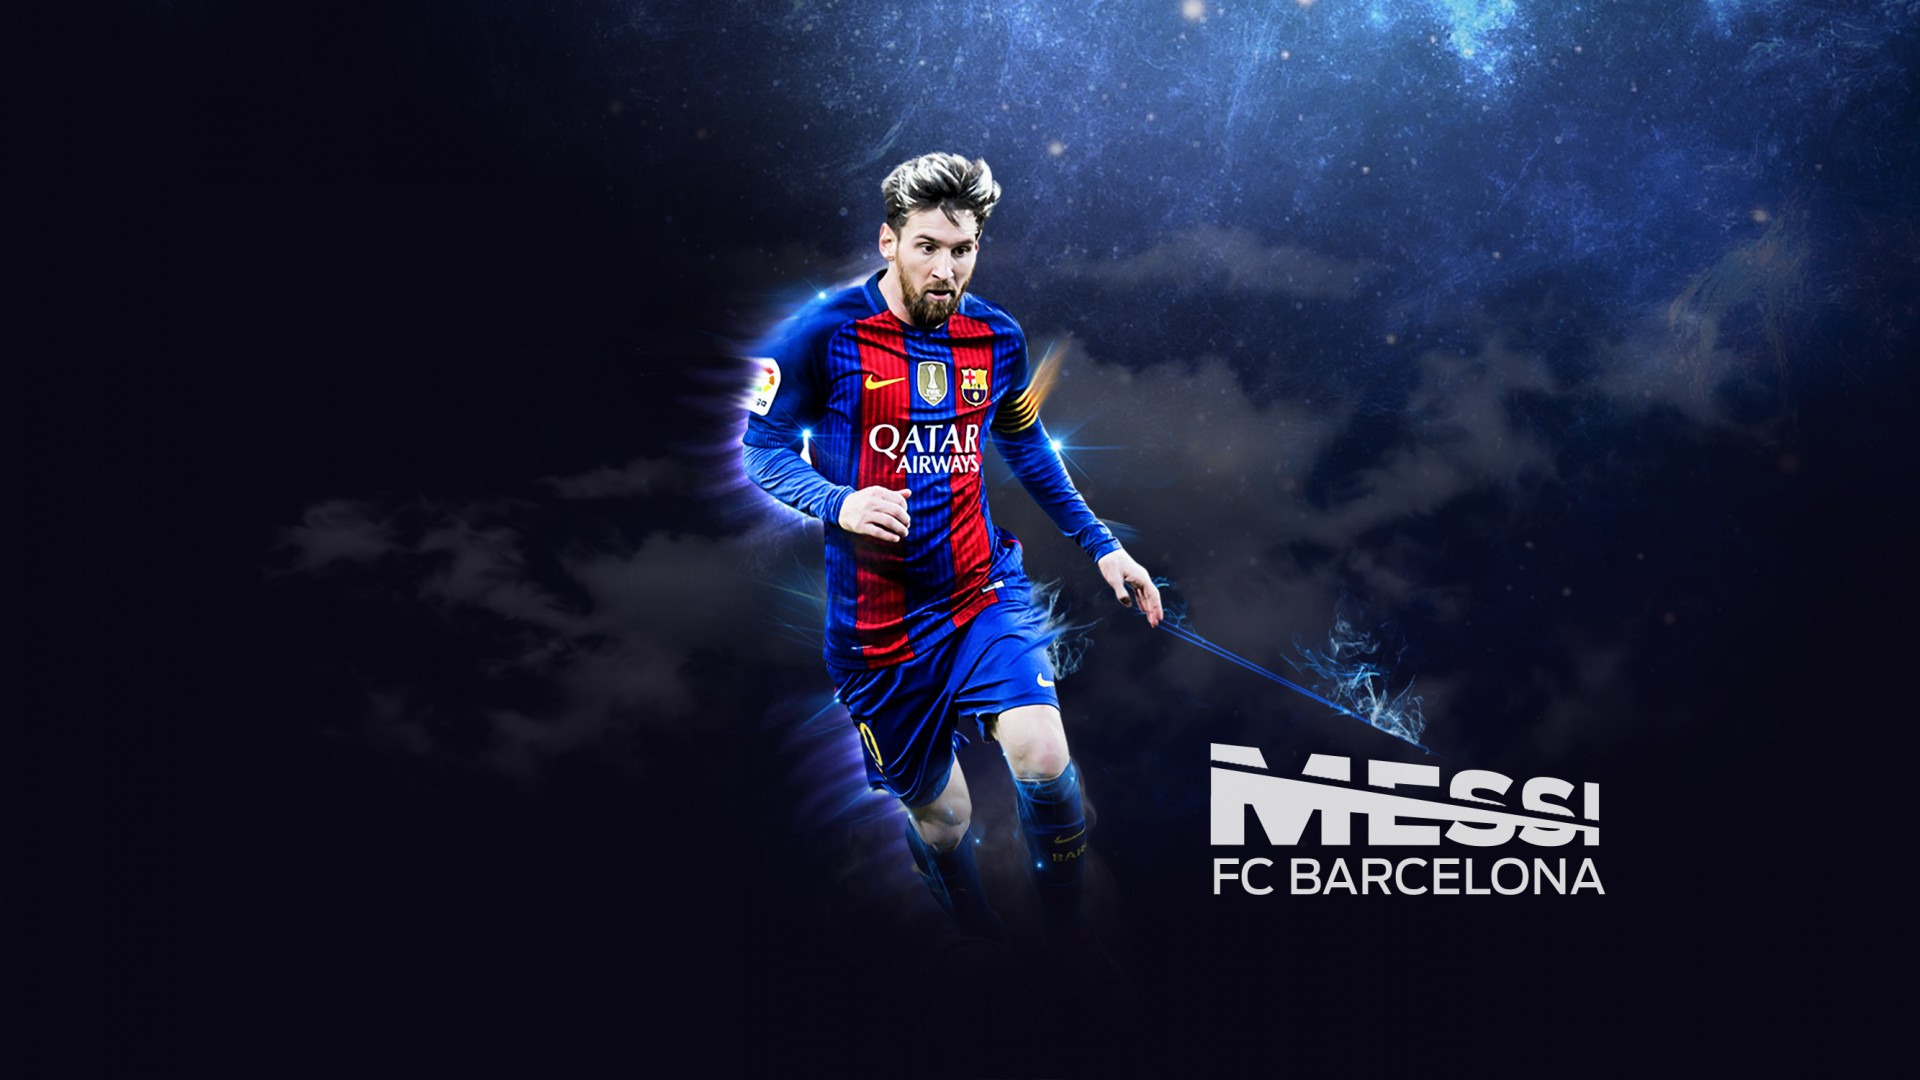 THE BEST 60 LIONEL MESSI WALLPAPER PHOTOS HD 2020 eDigital 1920x1080